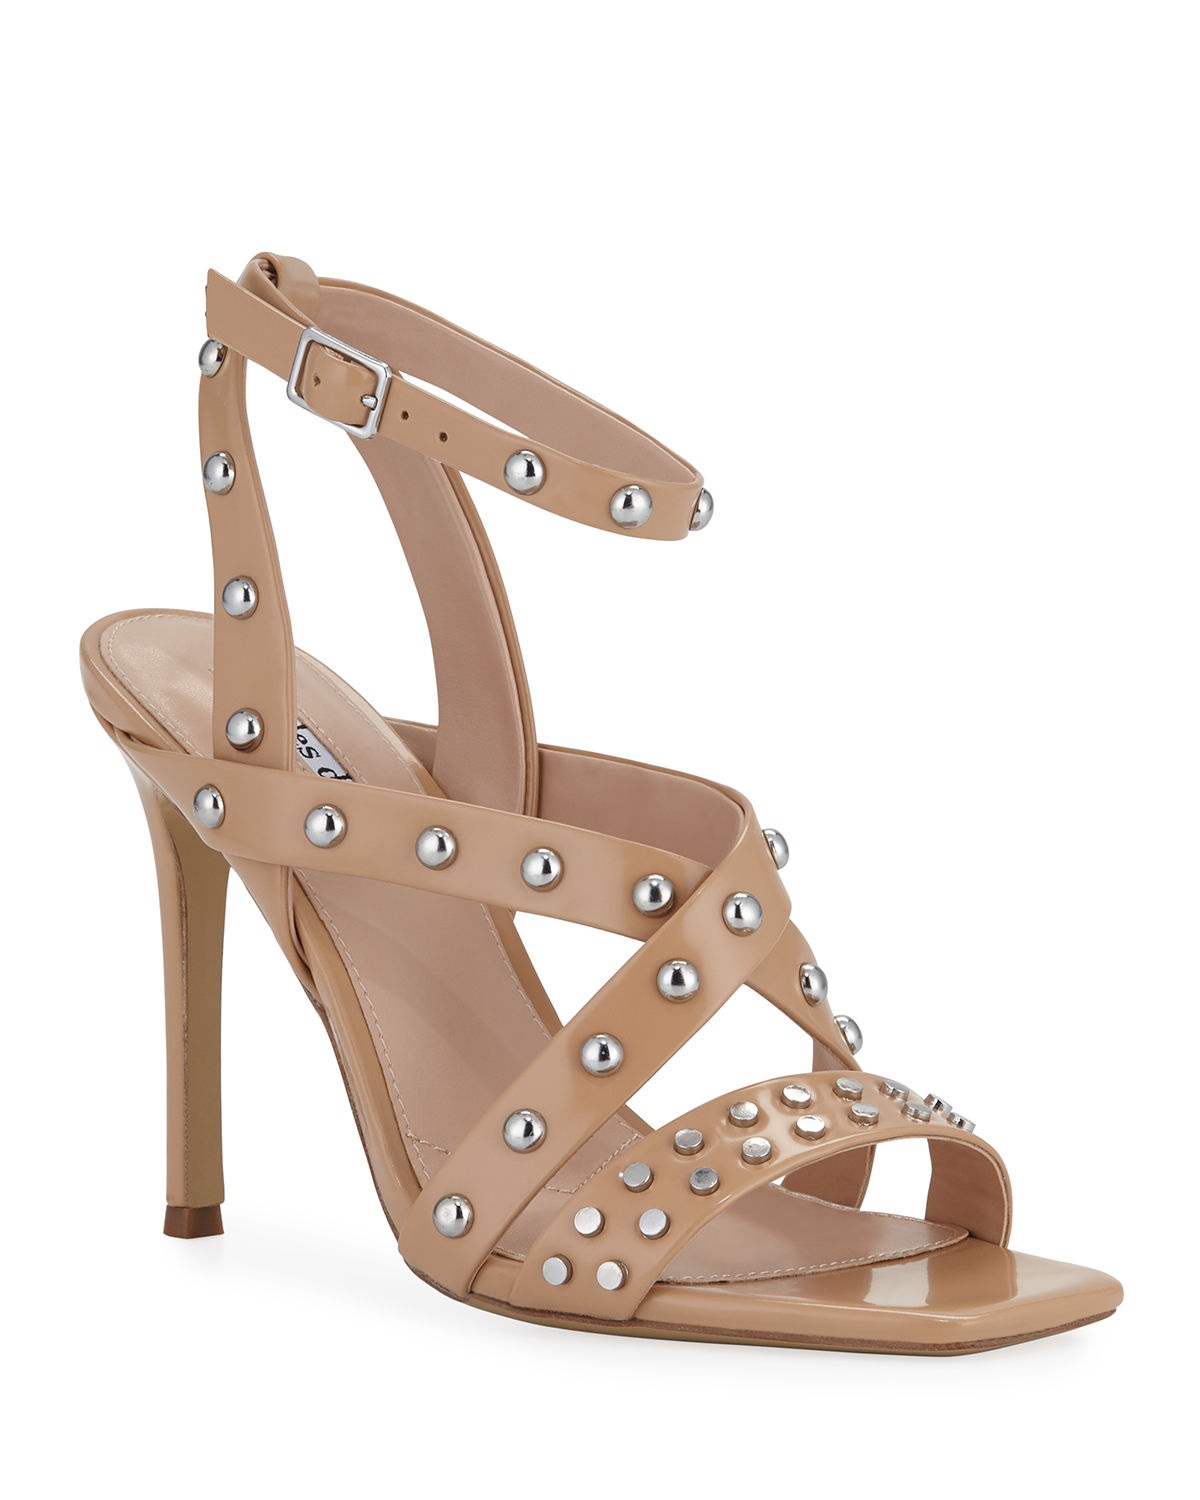 Charles David Sandals VELOCITY STRAPPY STUDDED LEATHER SANDALS